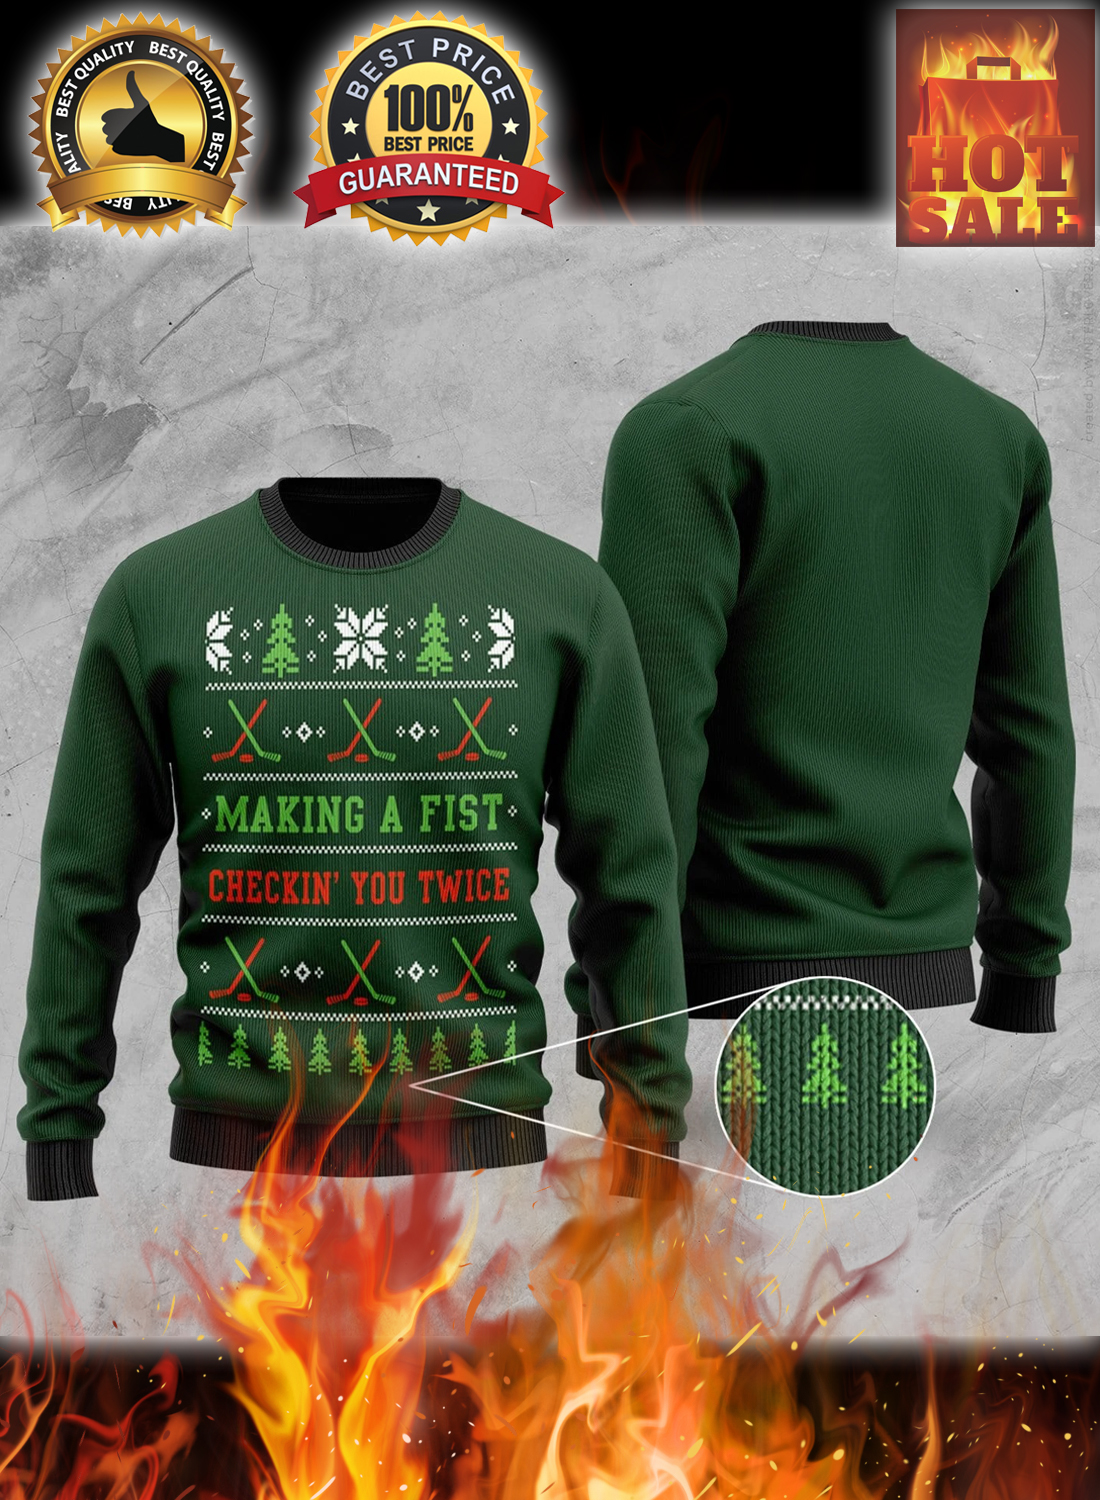 Hockey making a first checking you twice christmas sweater 3